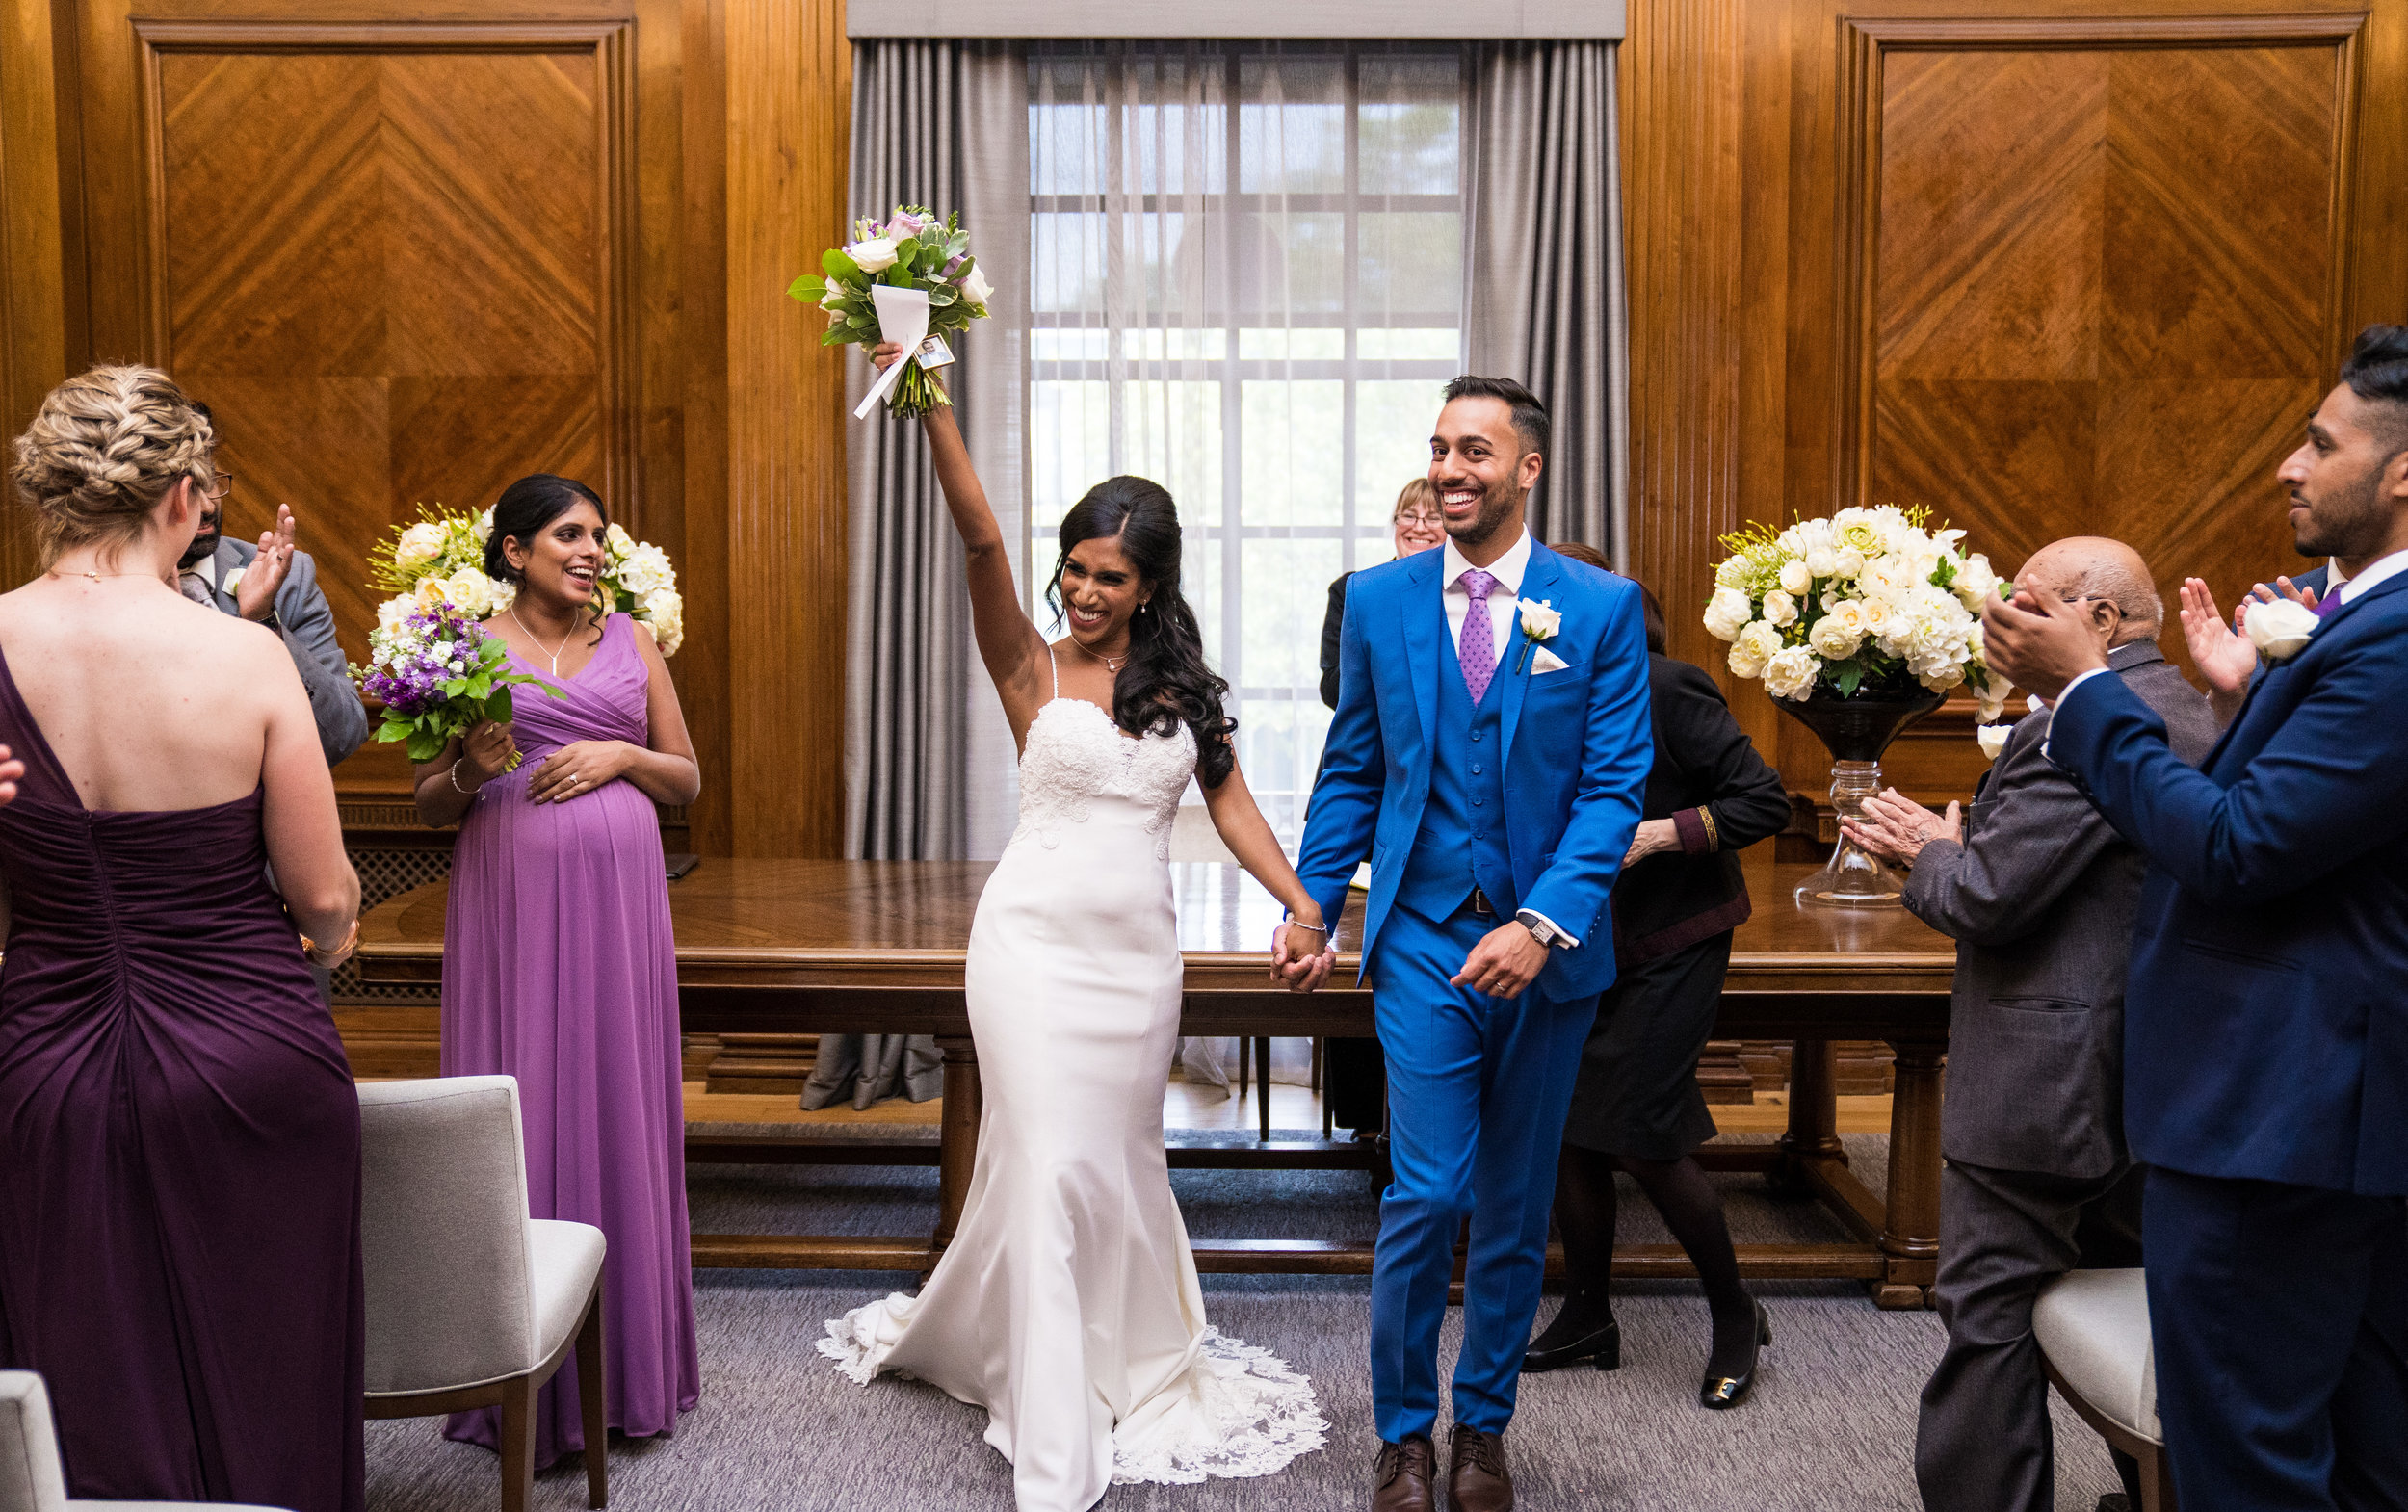 anglo-asian-hindu-civil-wedding-photography-videography-london-portrait-marylebone-old-town-hall-35